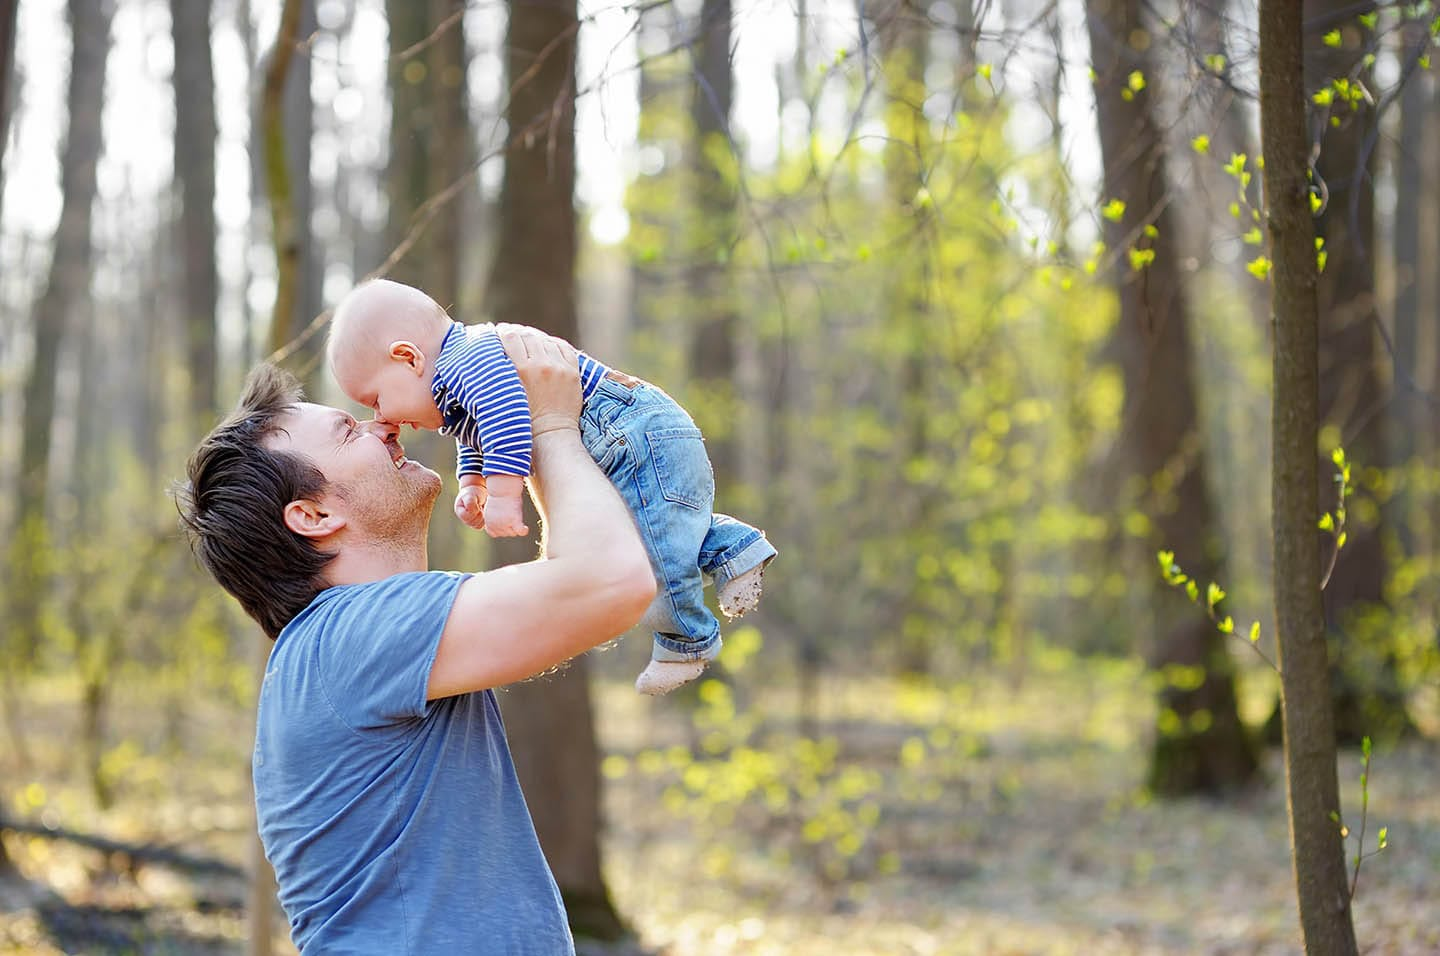 man holding up baby